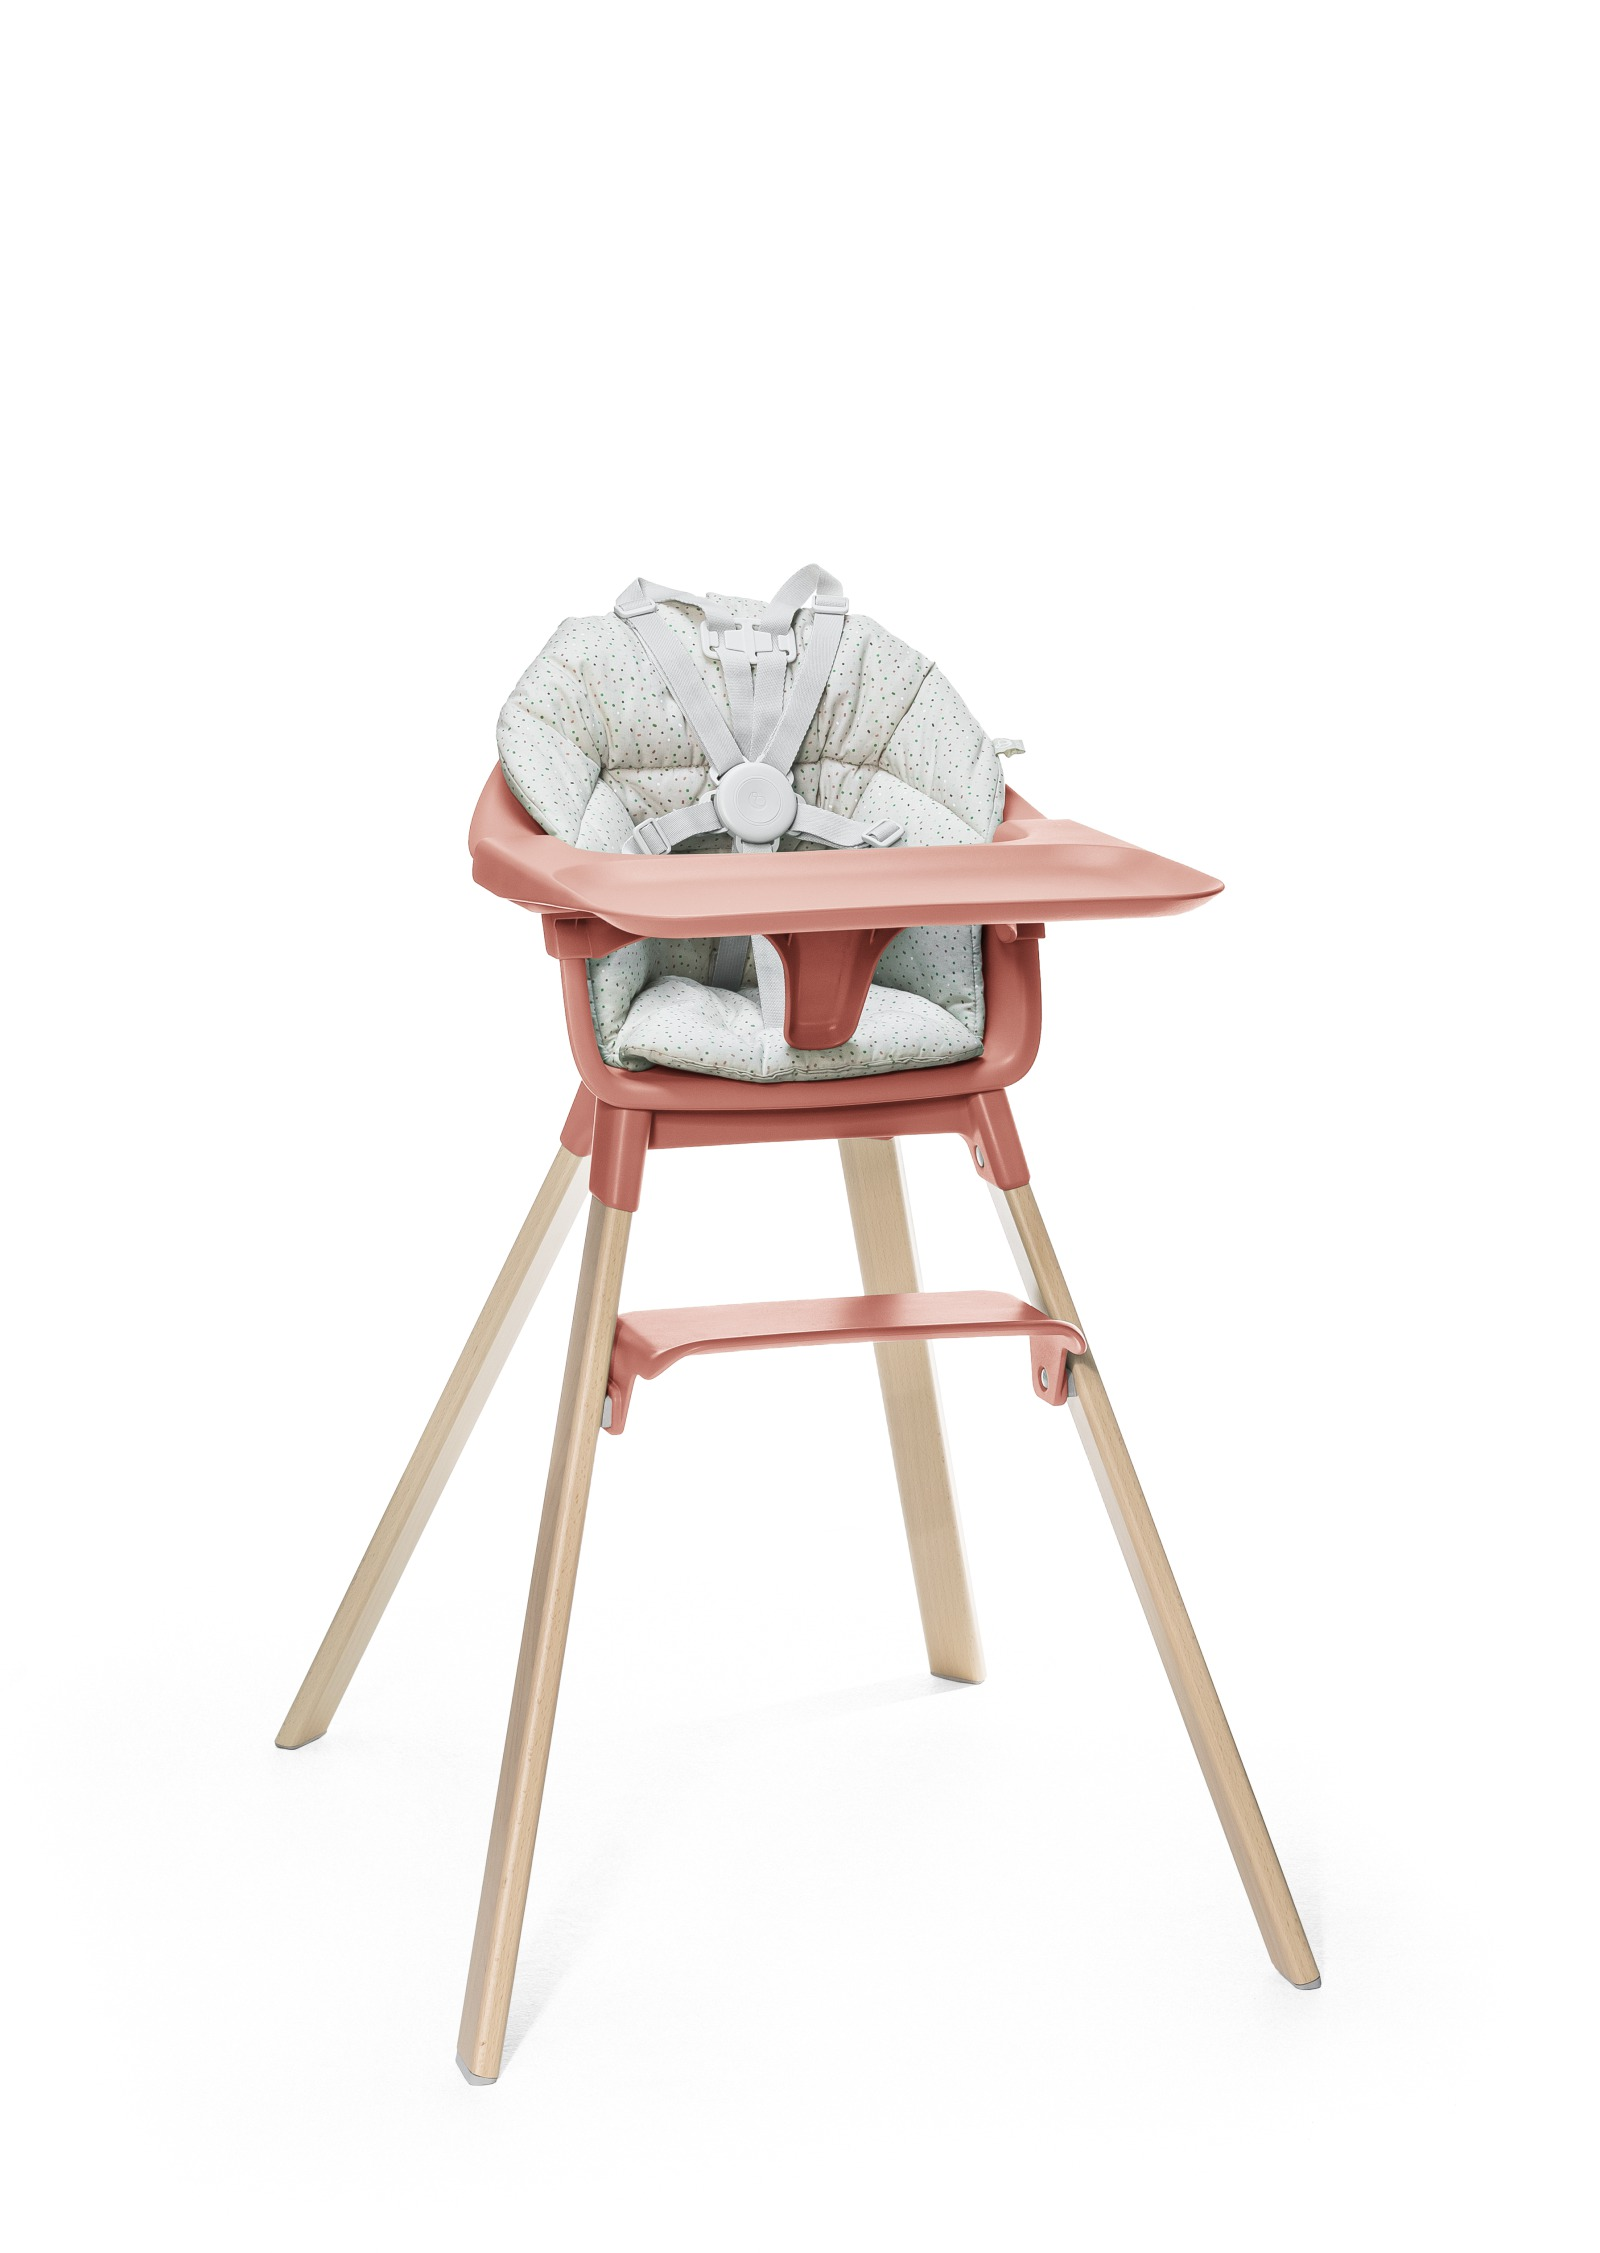 Stokke® Clikk™ High Chair. Natural Beech wood and Sunny Coral plastic parts including Tray. Cushion Grey Sprinkle and Harness.